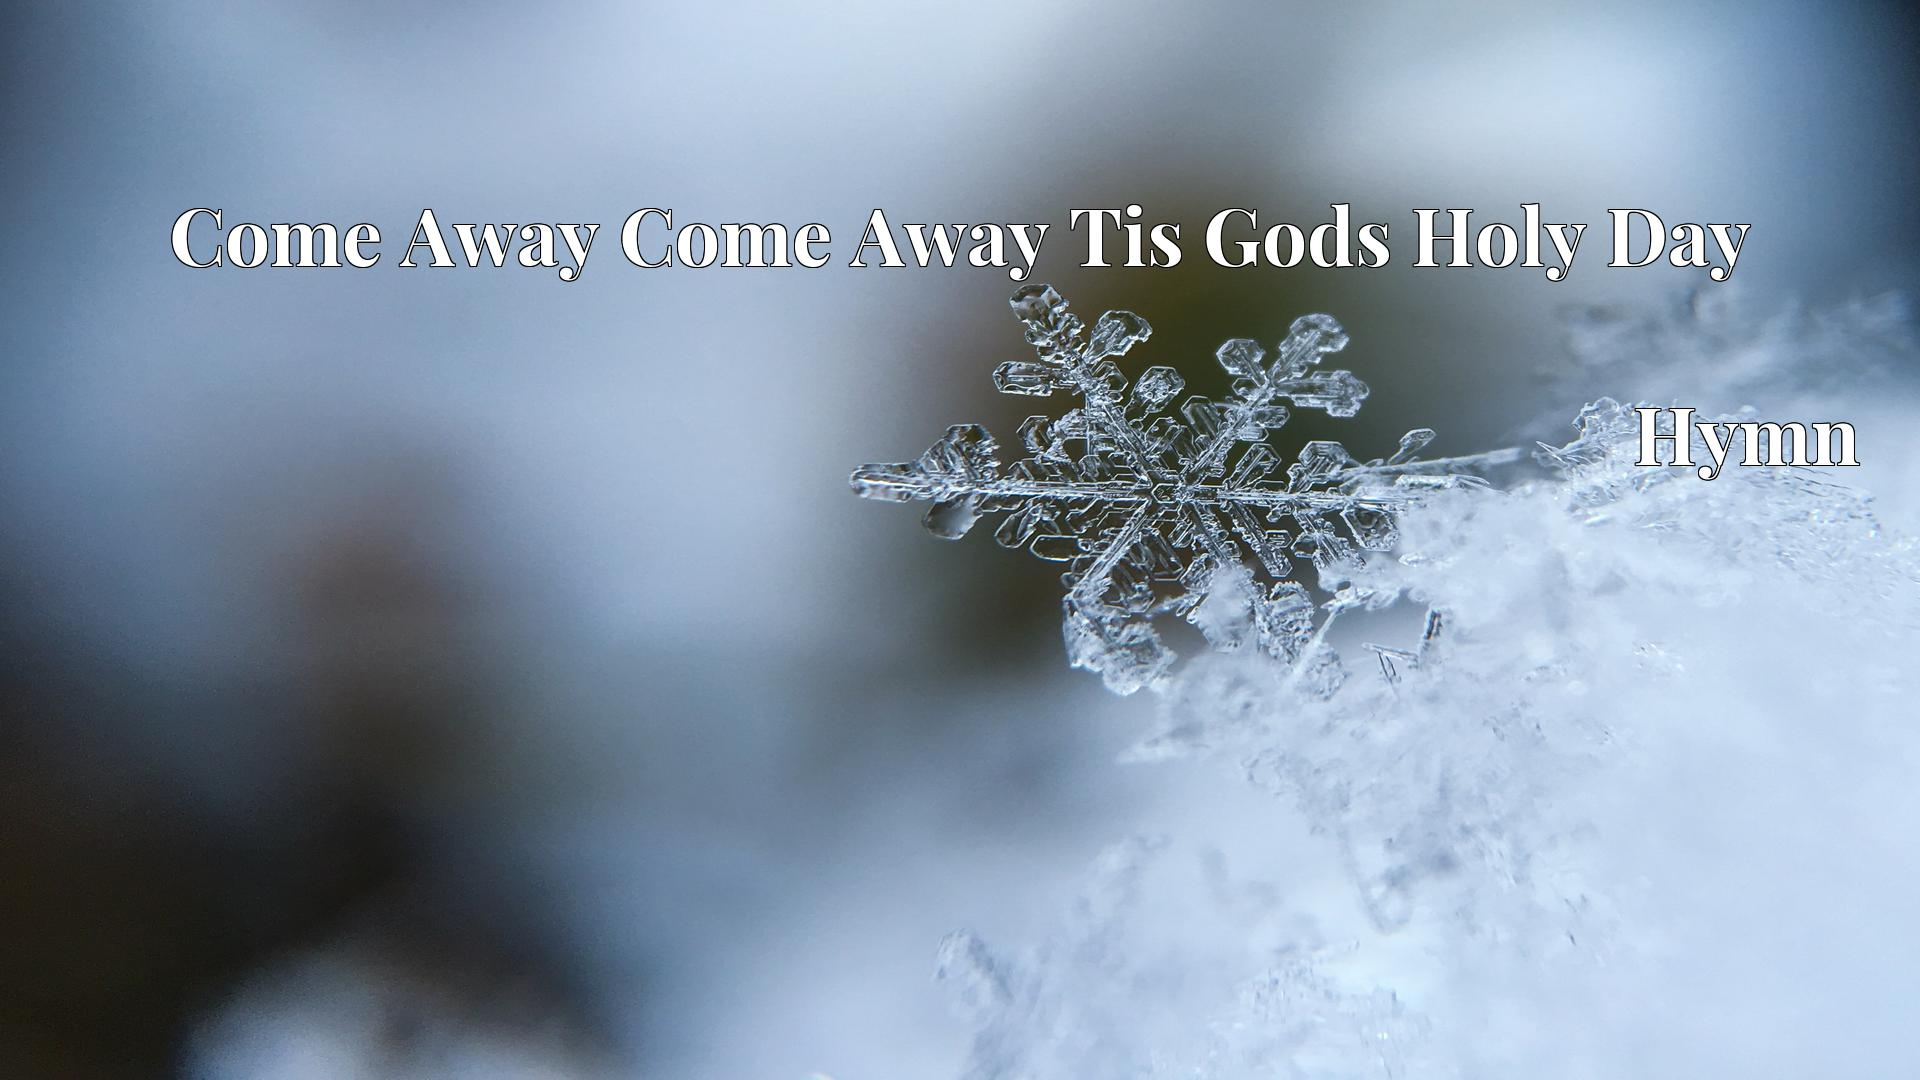 Come Away Come Away Tis Gods Holy Day - Hymn